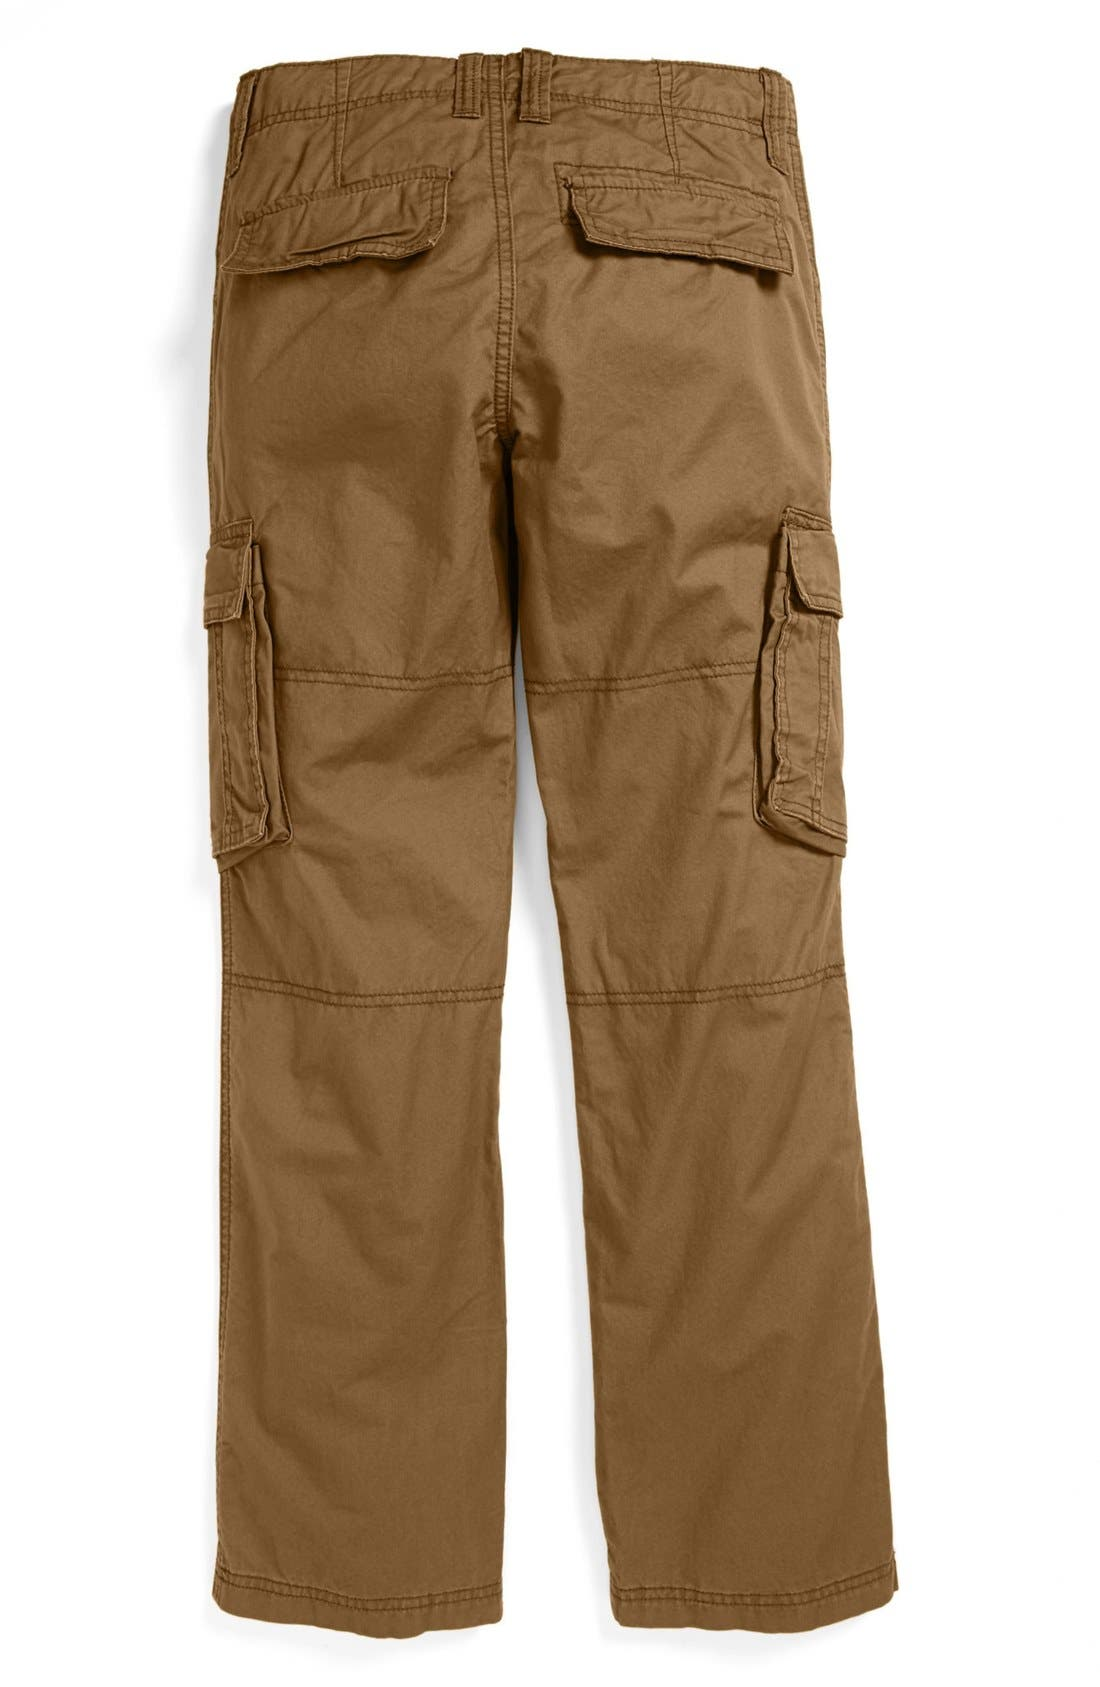 Alternate Image 2  - Tucker + Tate 'Cargo' Pants (Toddler Boys & Little Boys)